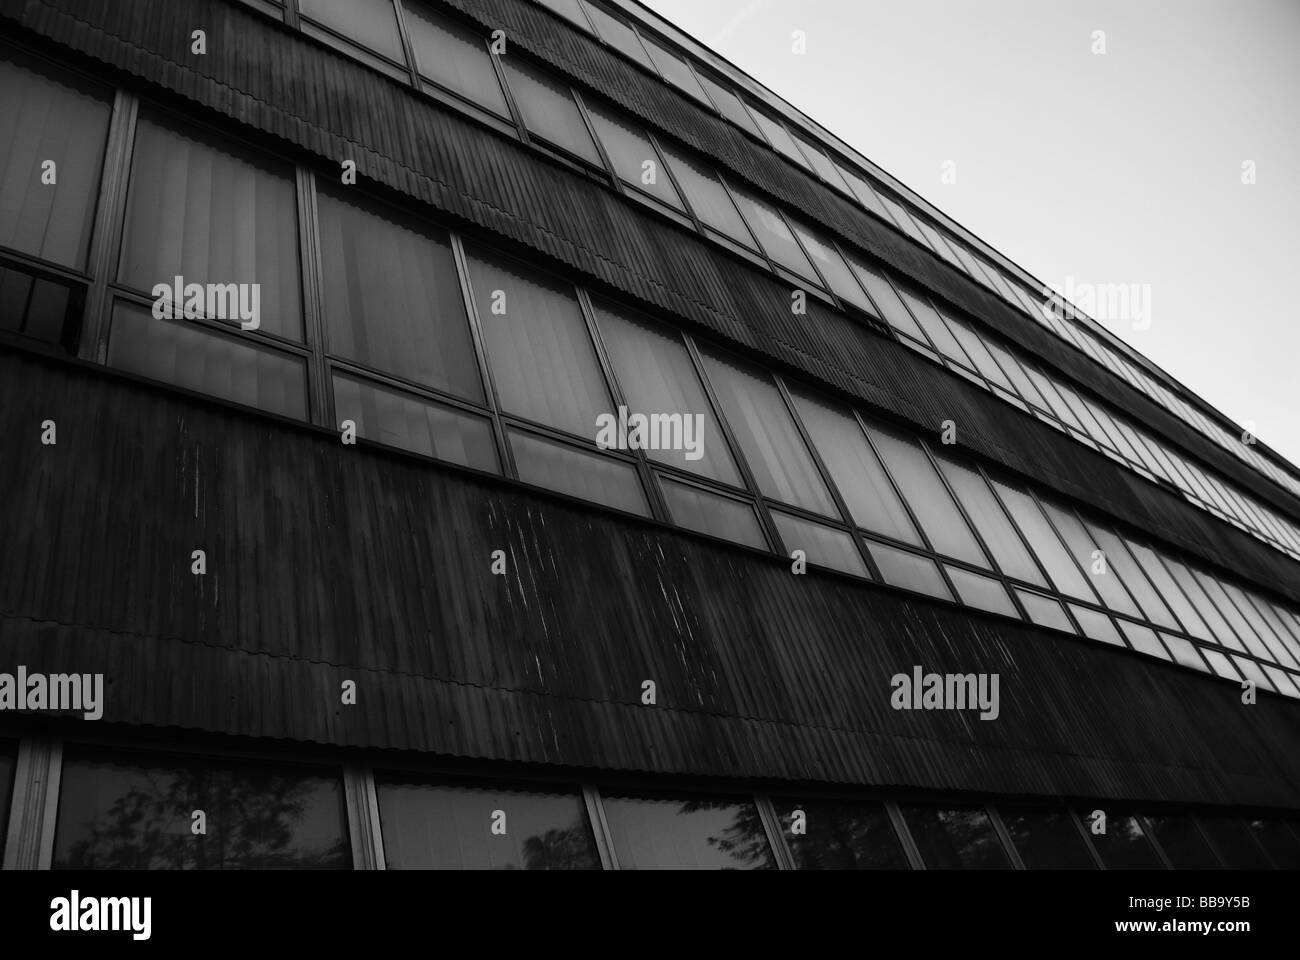 Building 01 - Stock Image